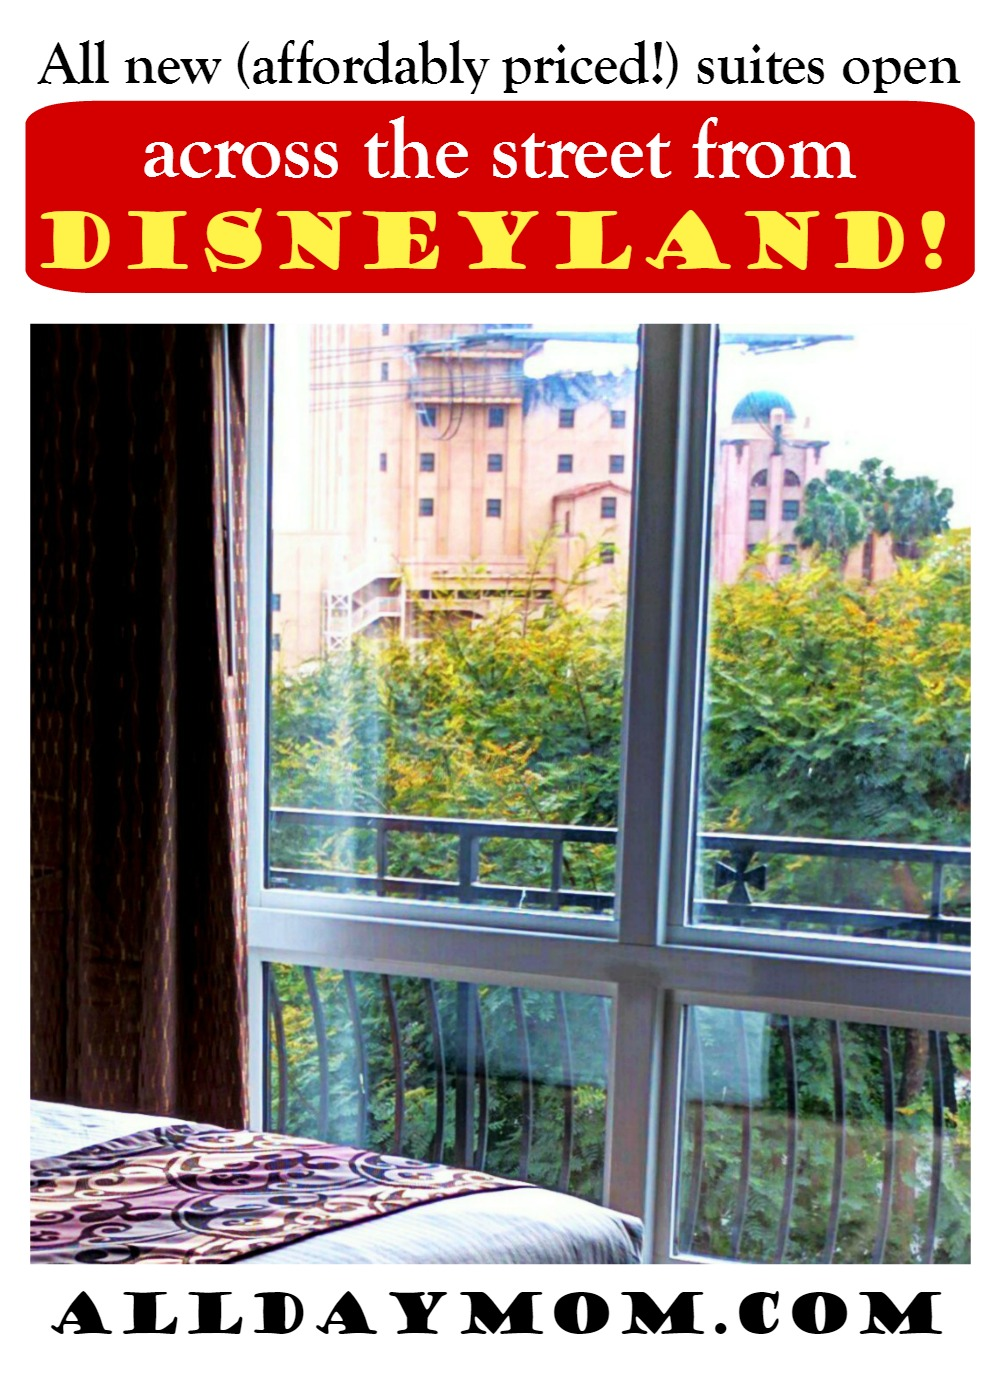 New affordably priced suites open across the street from Disneyland! Get an inside look at the new suites at Grand Legacy At The Park! Disneyland vacation - family travel